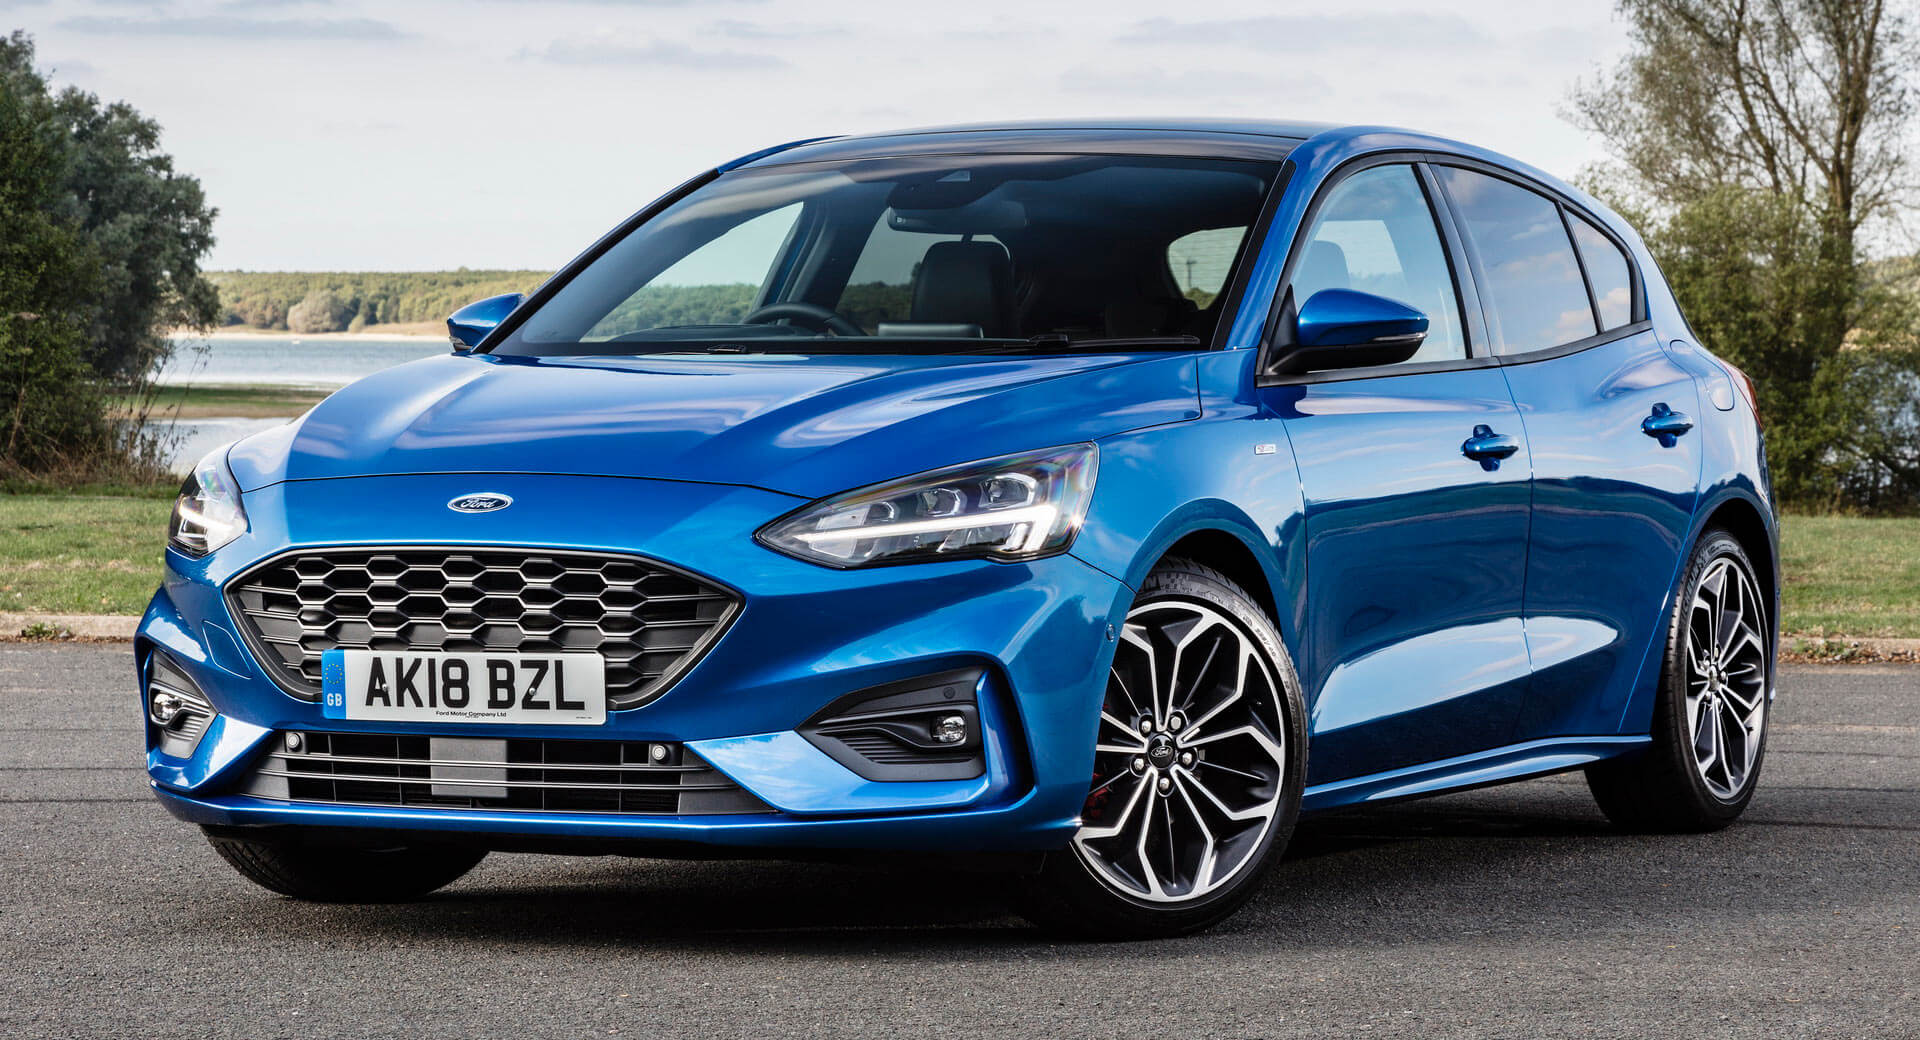 Ford Markets New Focus As Ideal For Handling Kids Growth